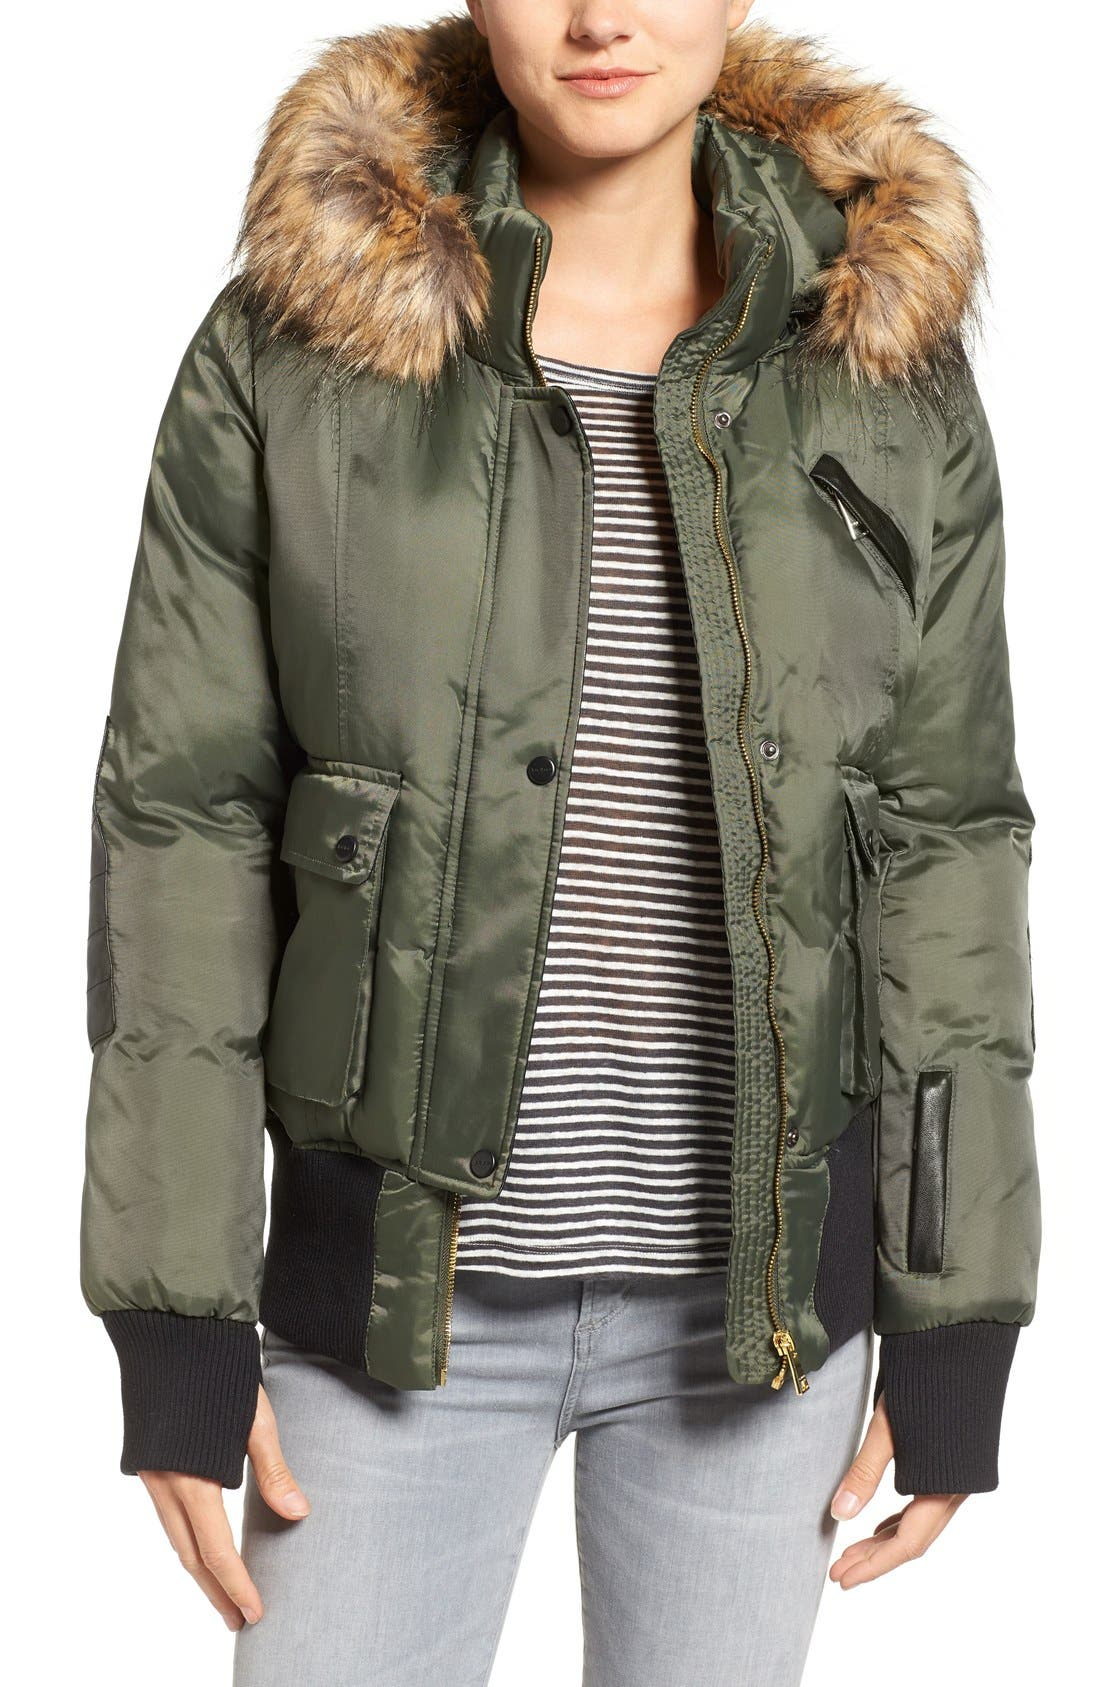 Alternate Image 1 Selected - bebe Faux Leather & Faux Fur Trim Bomber Jacket with Detachable Hood